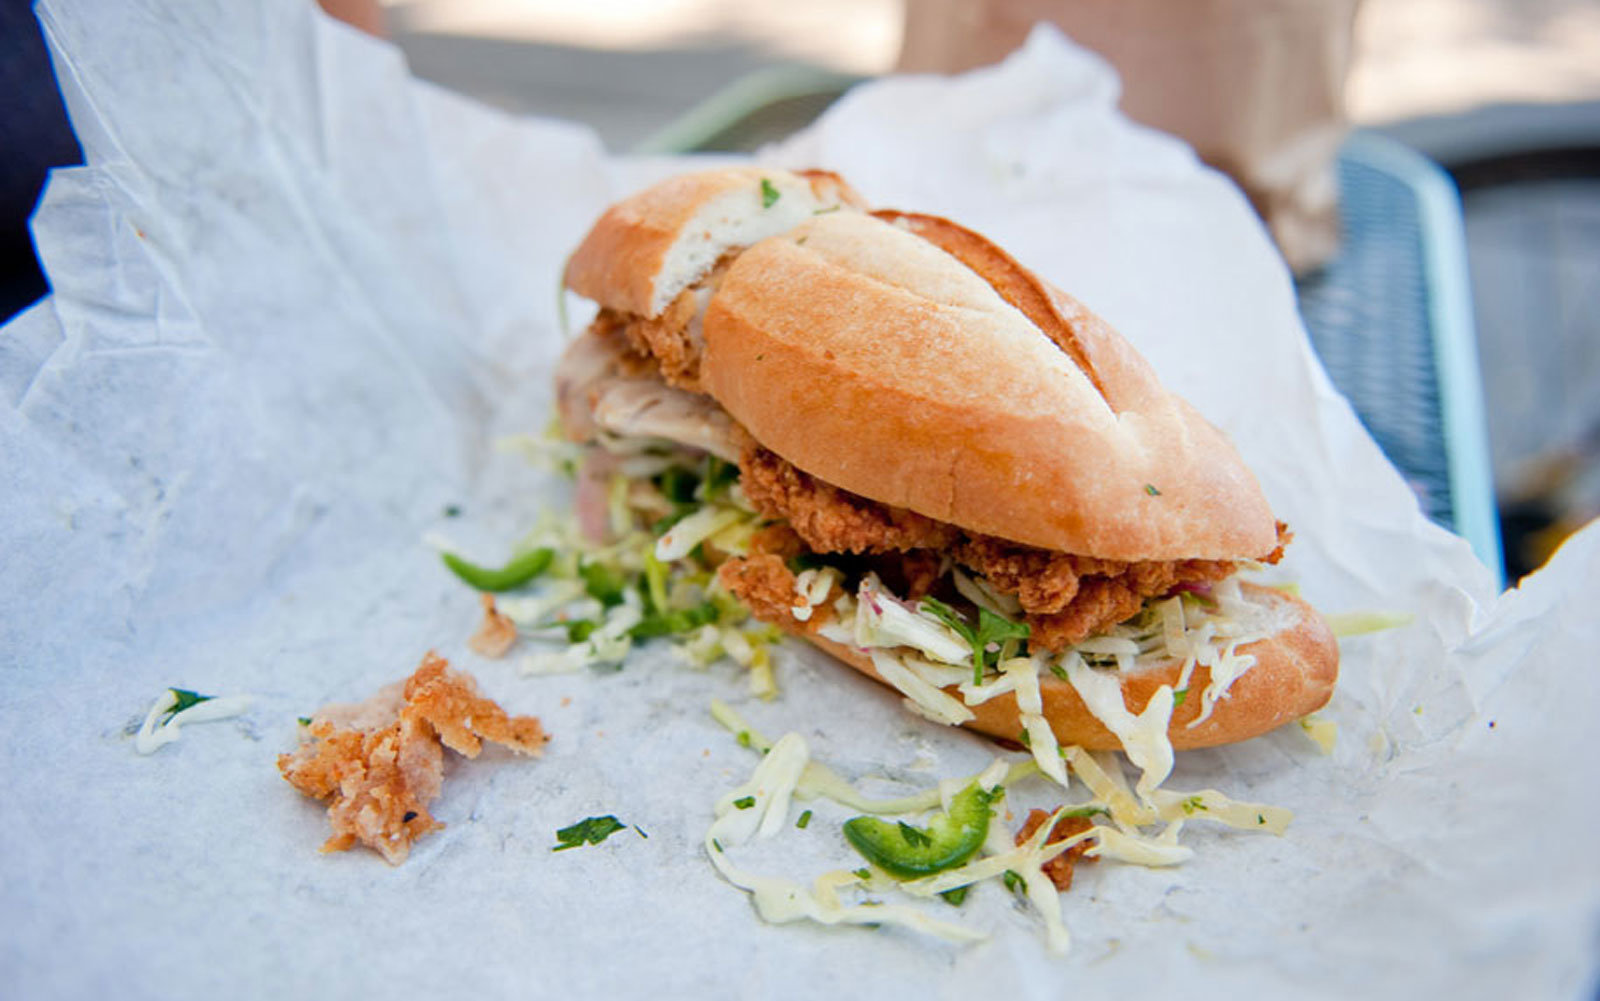 Best Sandwiches in the U.S.